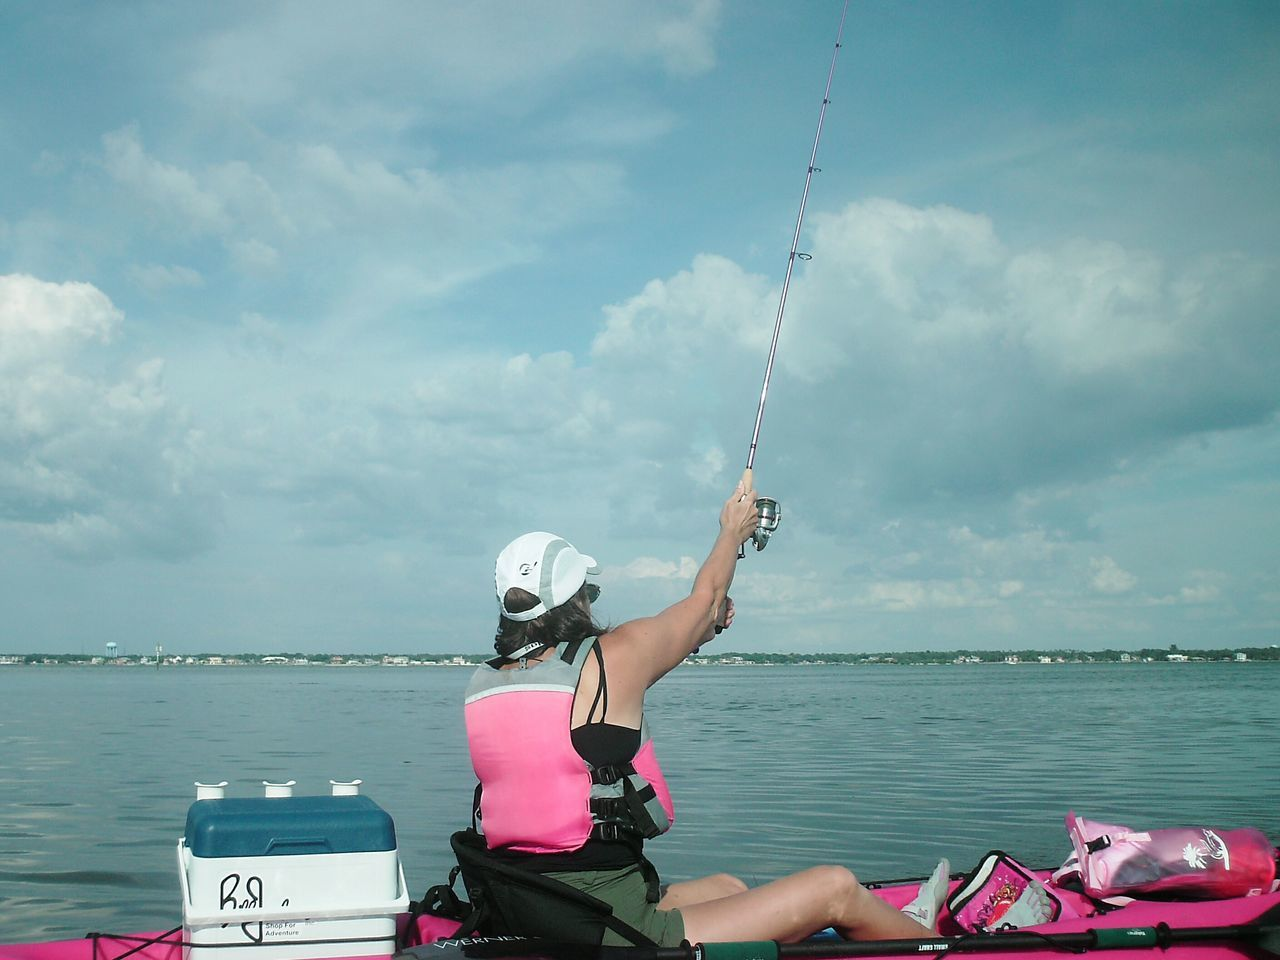 Kayak Fishing Kayaker Fishing Pink Female Adult Sportswoman Florida Life Fisherman Watersports Weekend Warrior Female Kayak Kayaking Weekend Activities Weekend Warriors Florida Fishing People